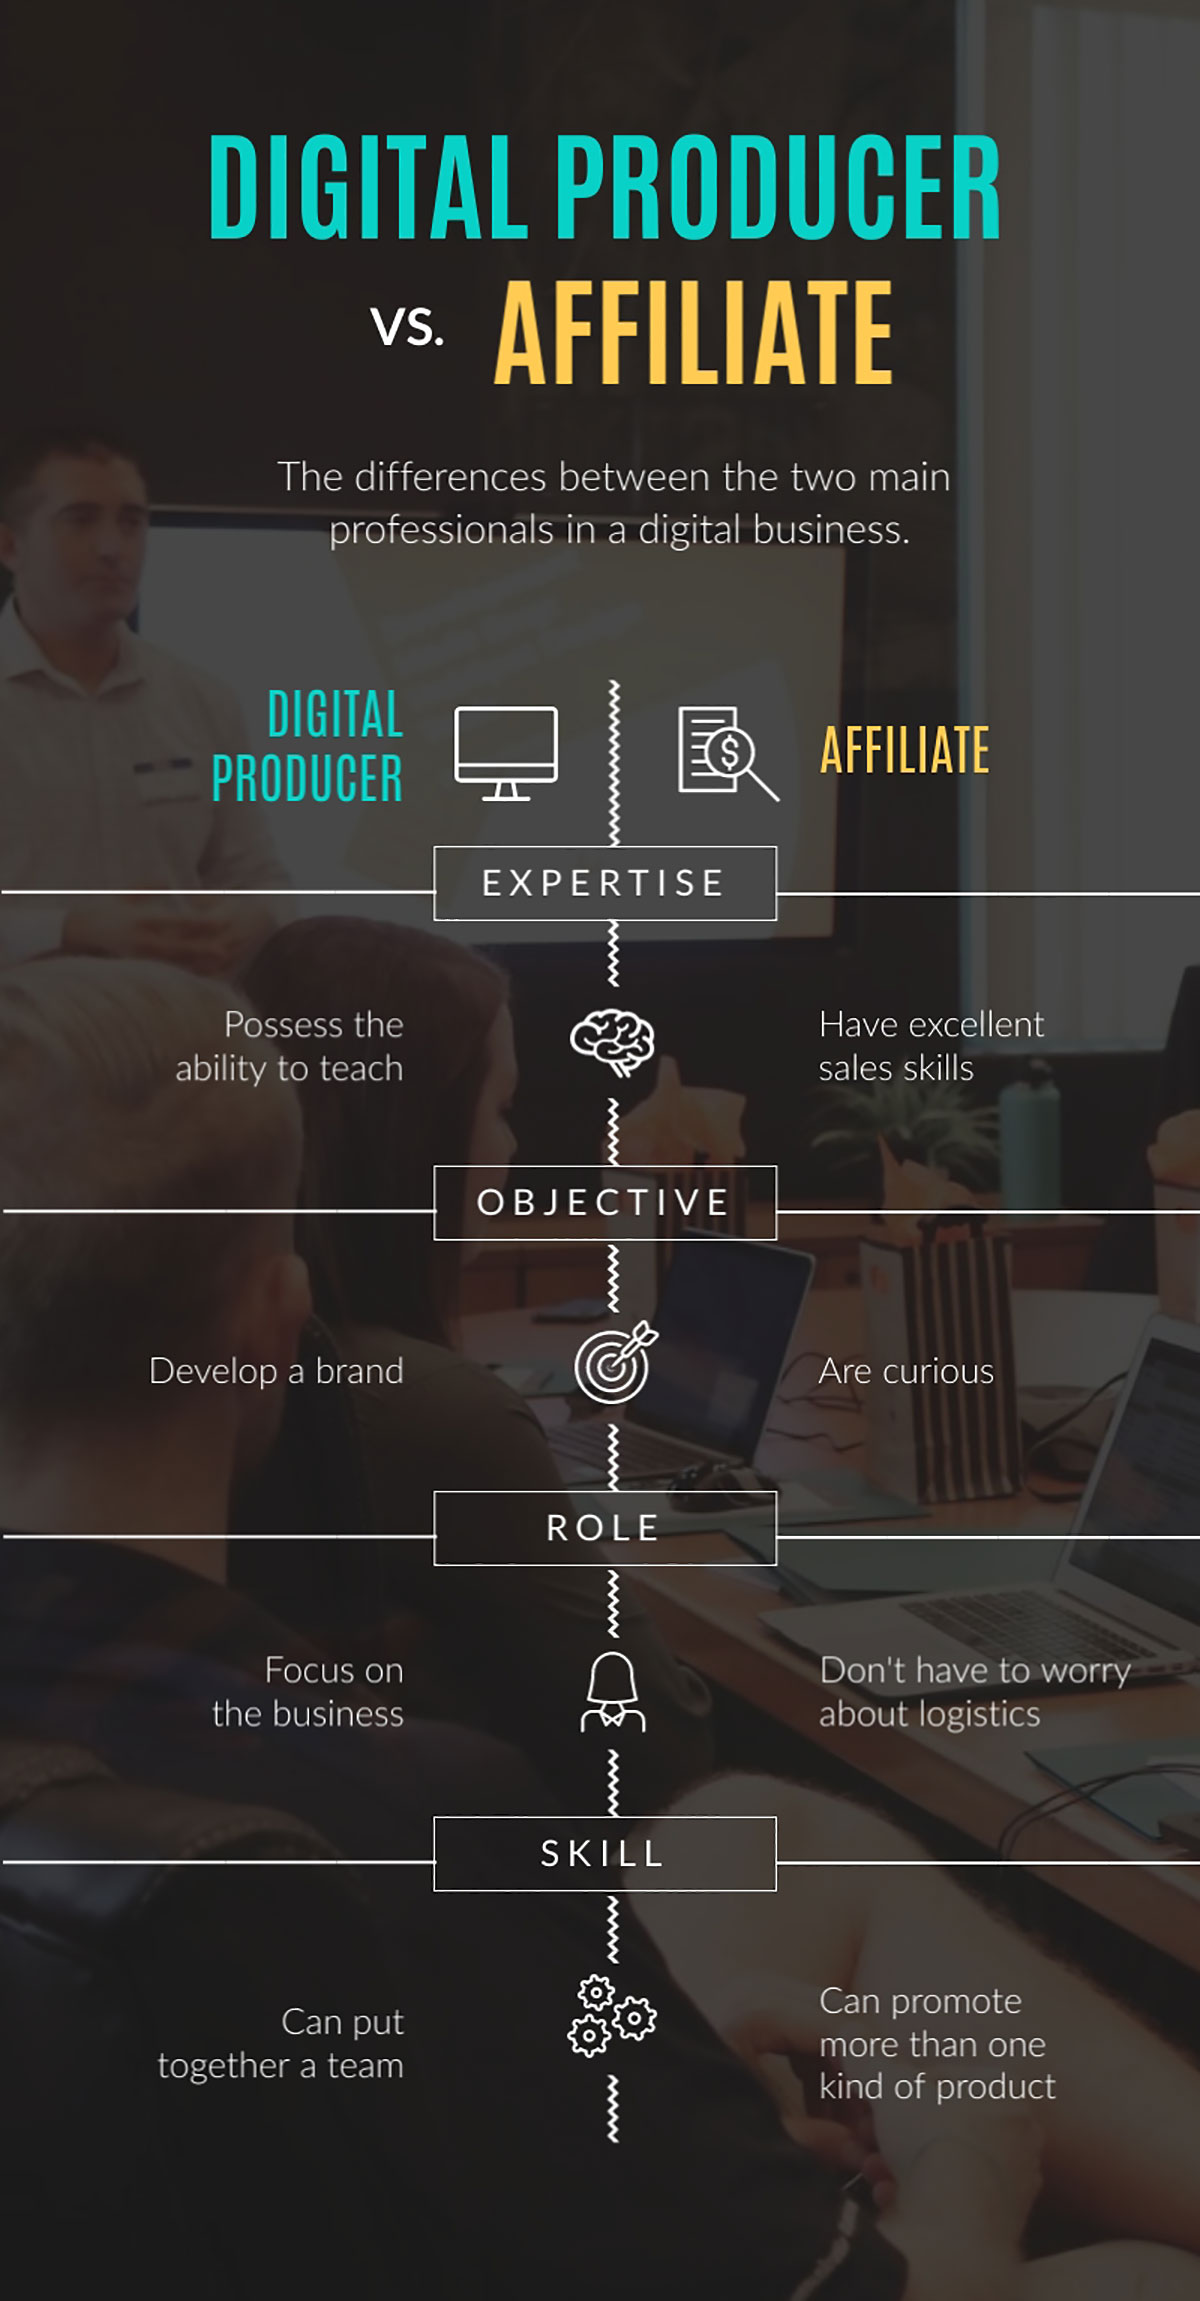 sell online courses - digital producer vs affiliate infographic